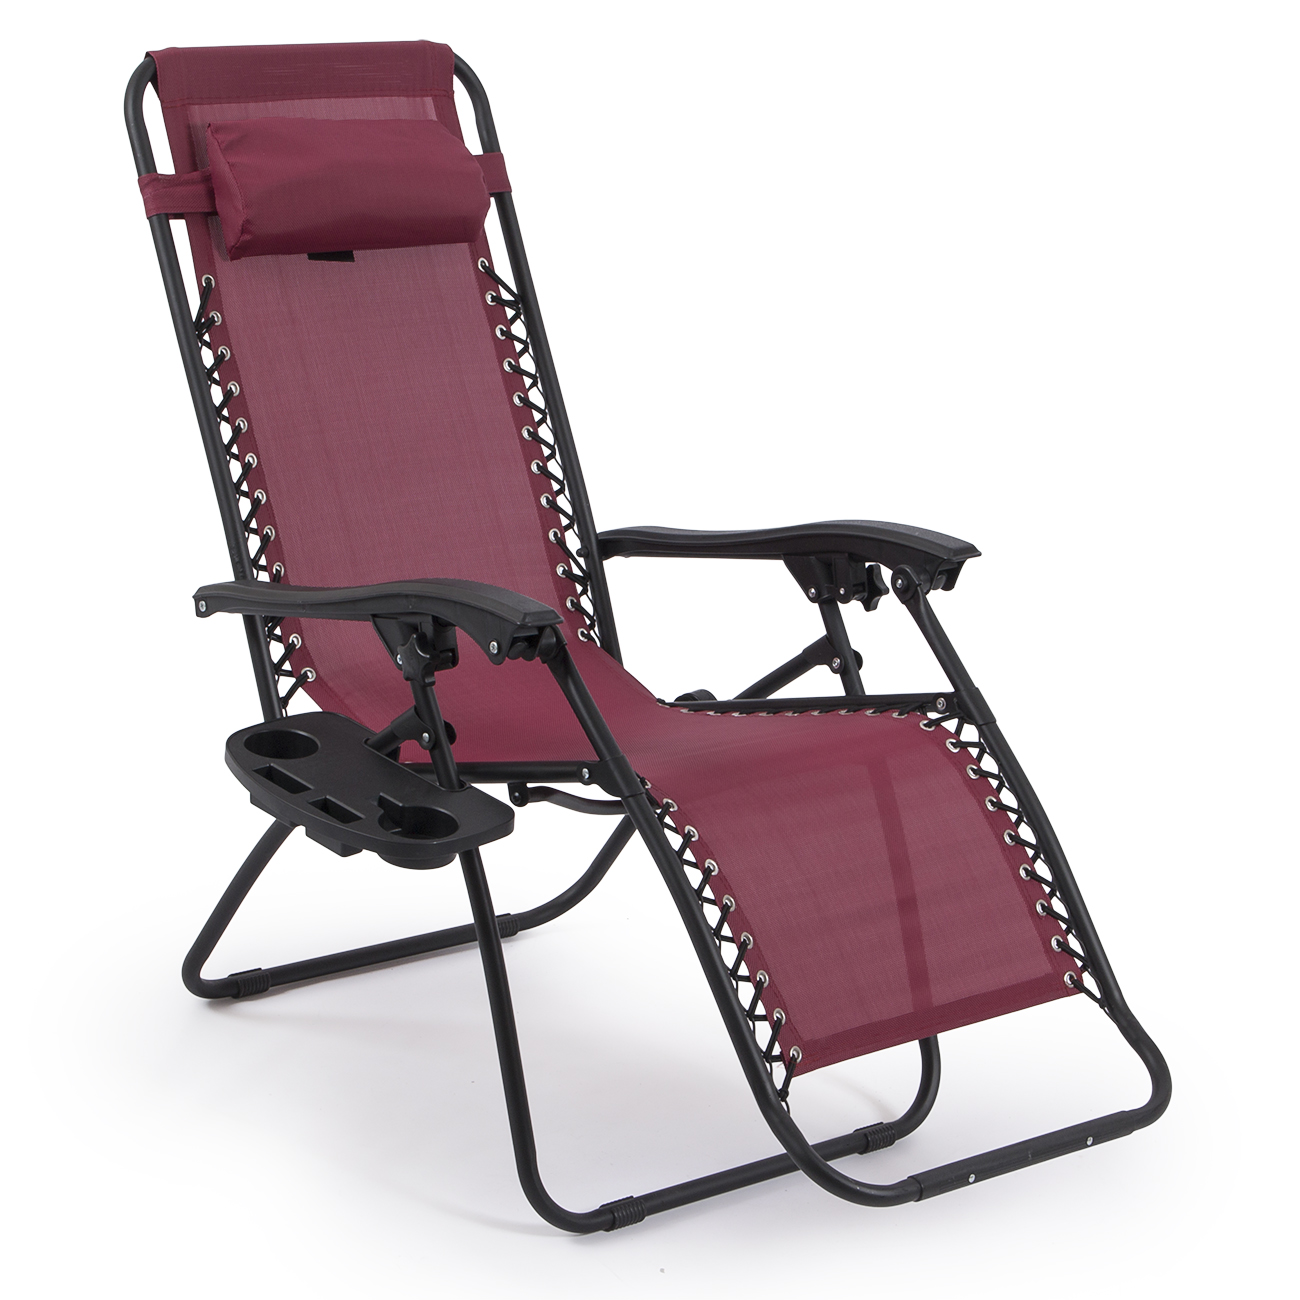 Delicieux 2 Folding Zero Gravity Reclining Lounge Chairs Utility